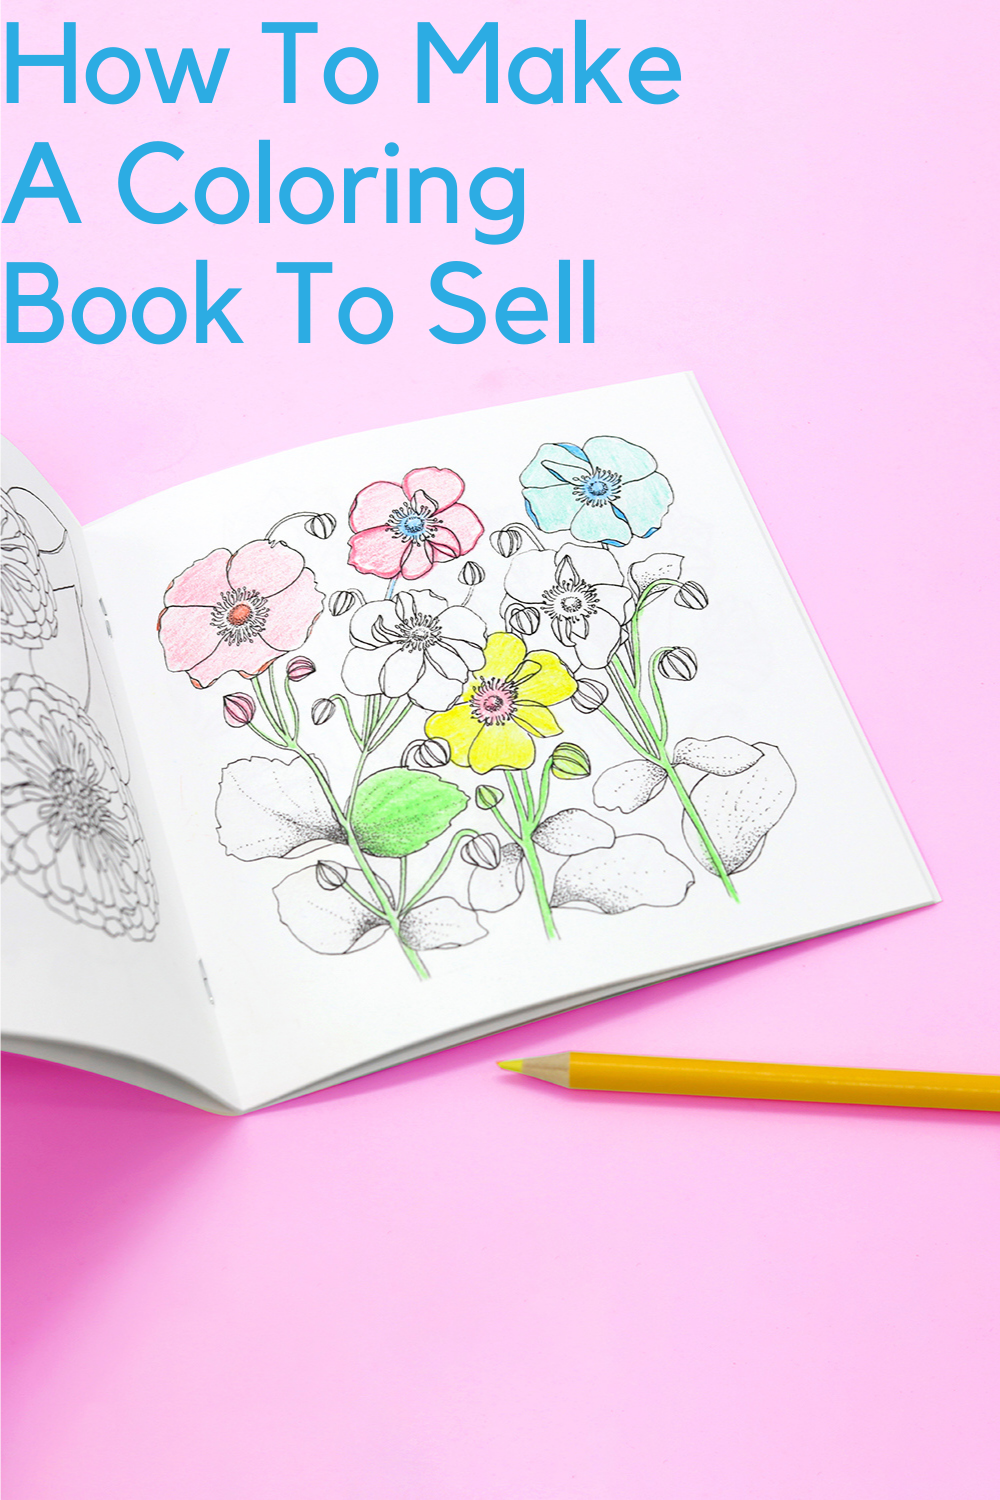 How To Make A Coloring Book To Sell Diy Coloring Books Coloring Books Kids Coloring Books